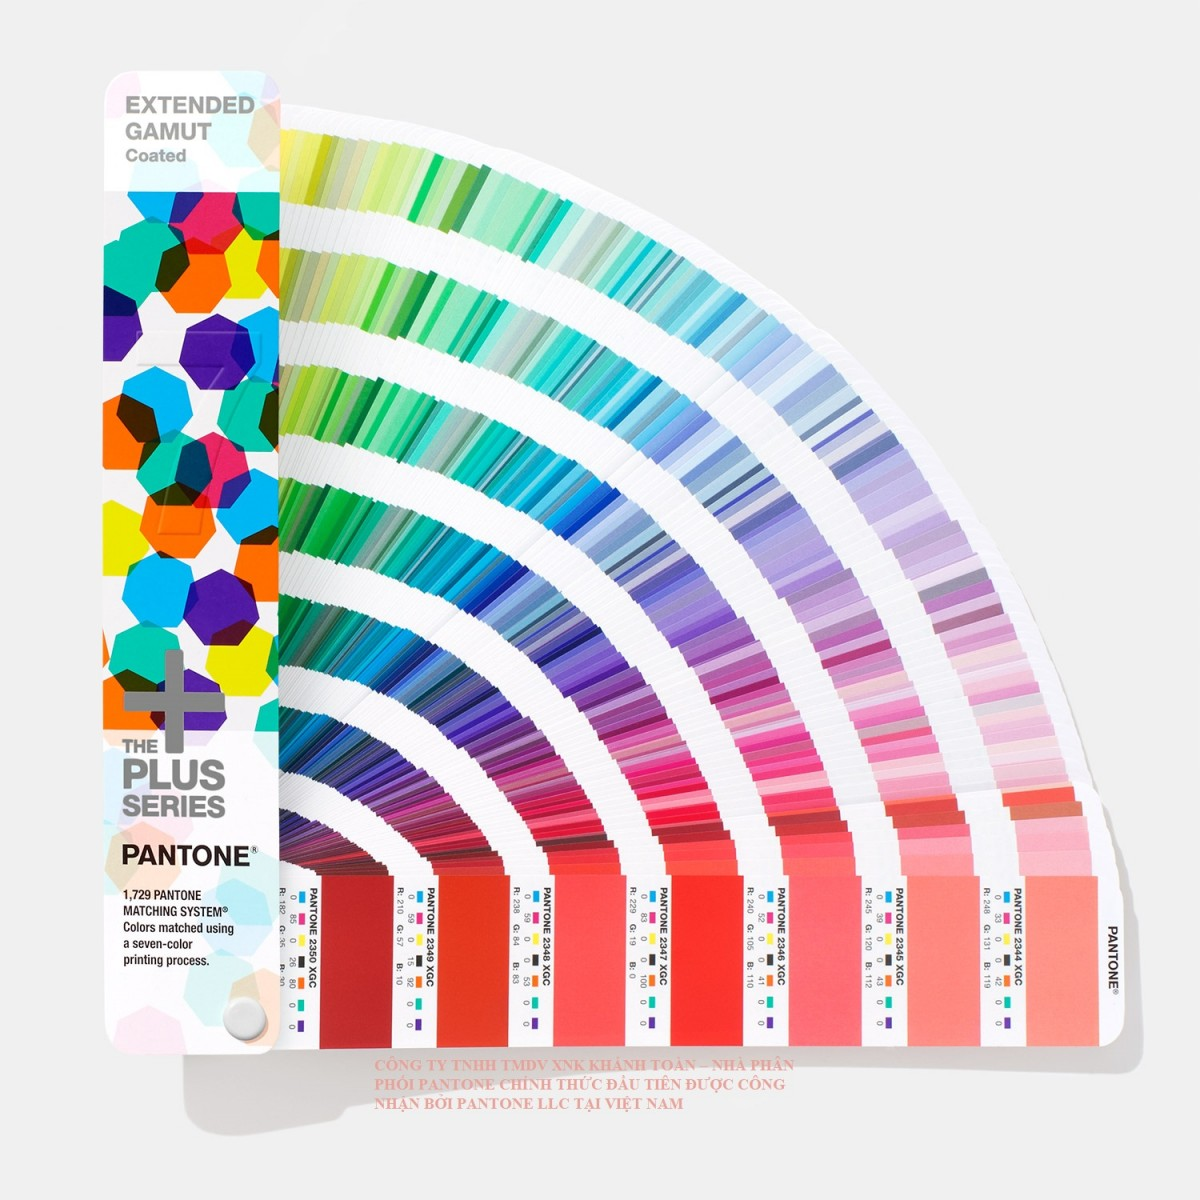 bang mau pantone GG7000-pantone-extended-gamut-coated-guide-pms-7-color-process-product-1